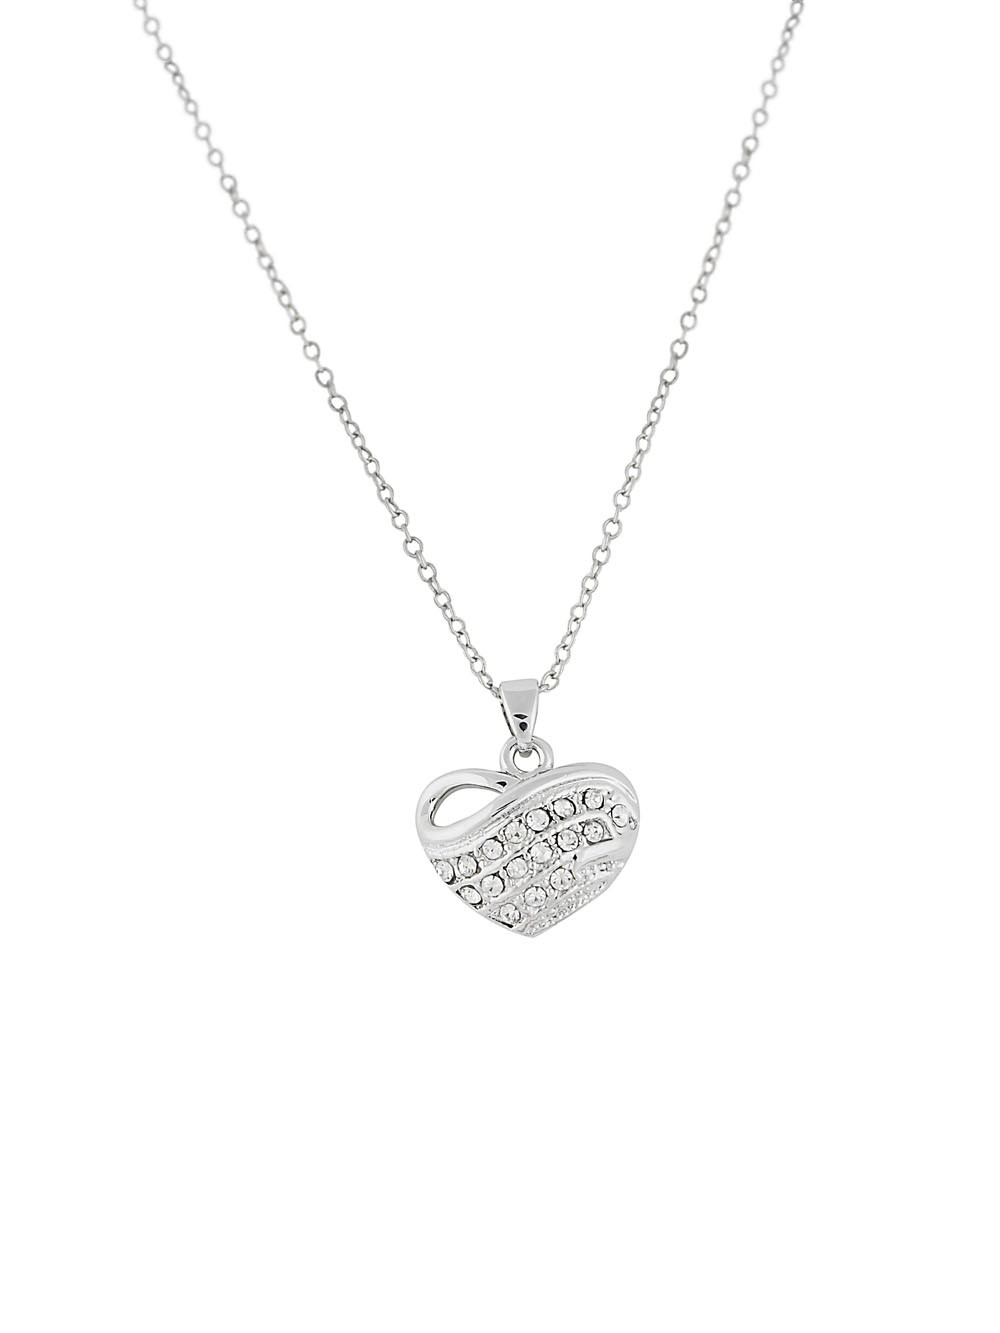 Heart Pendant Necklace with Rhinestones Detailing